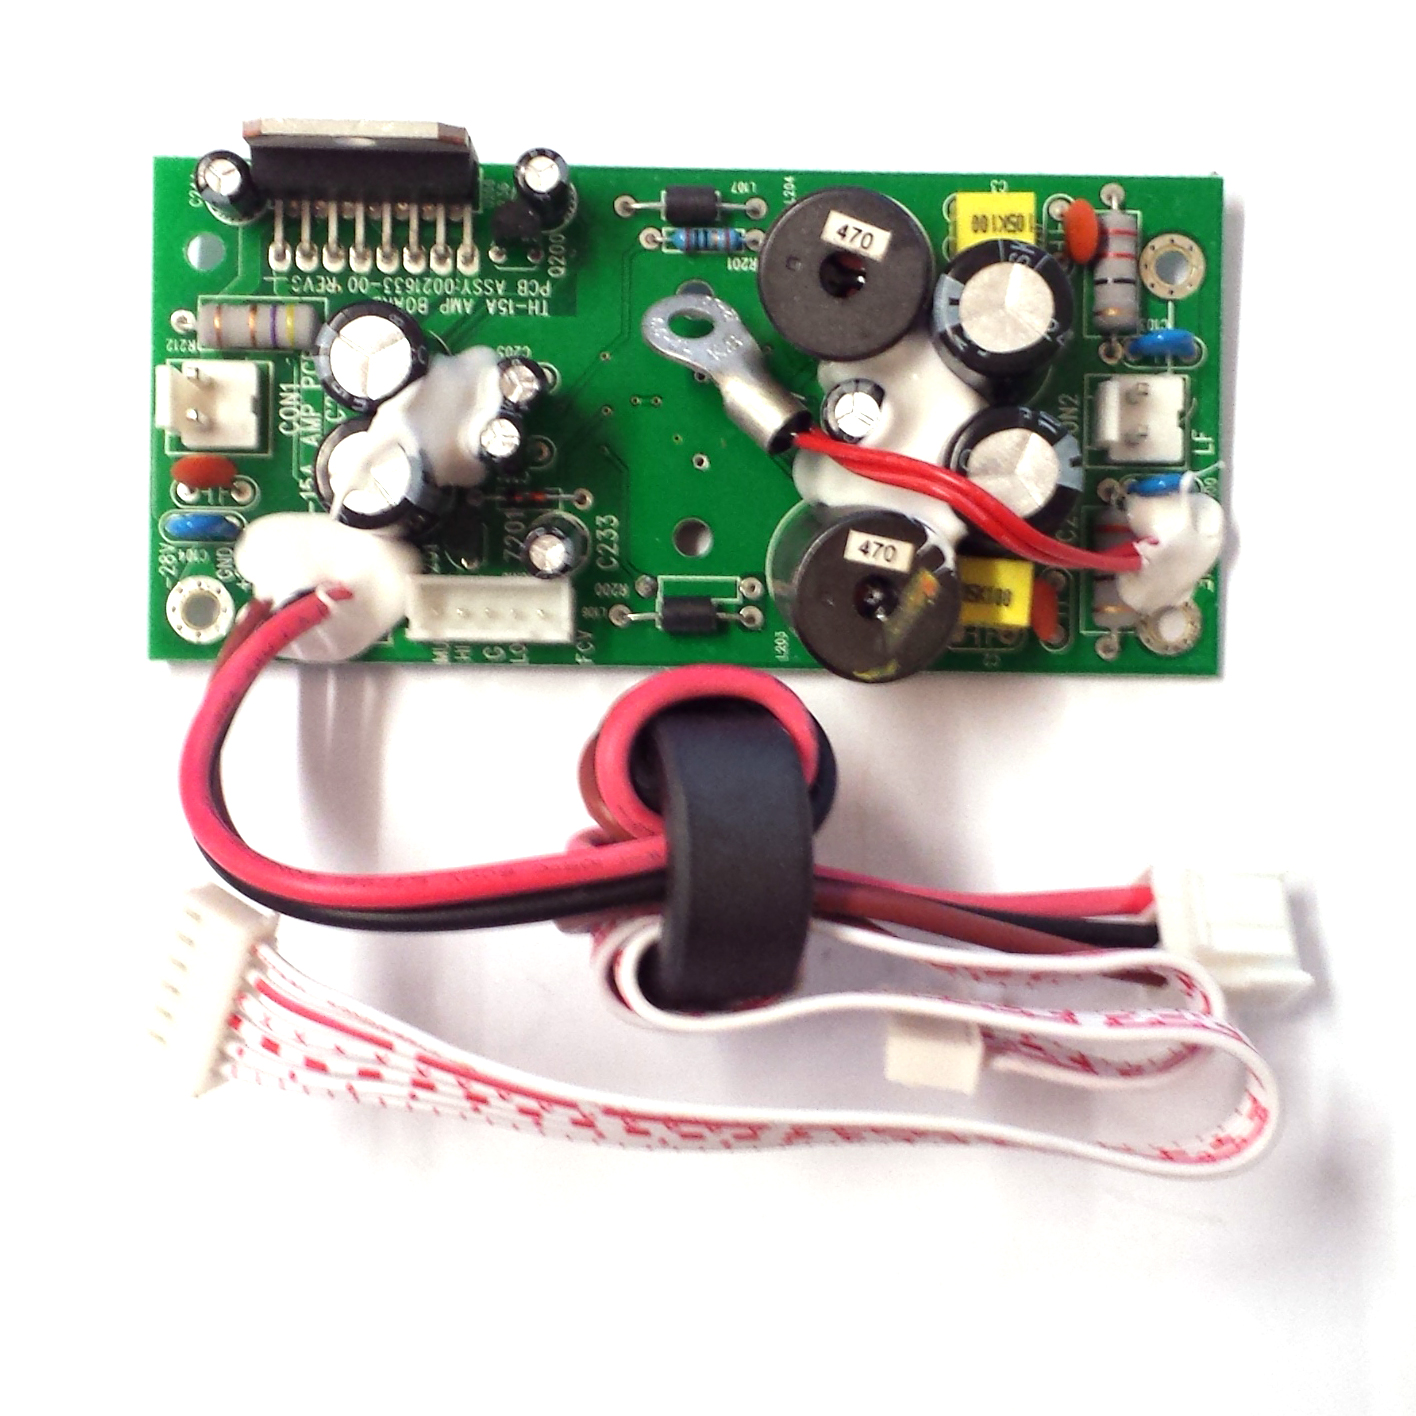 Mackie Thump Th 12a 15a Pcb Amplifier Repair Audio Amplifierwith